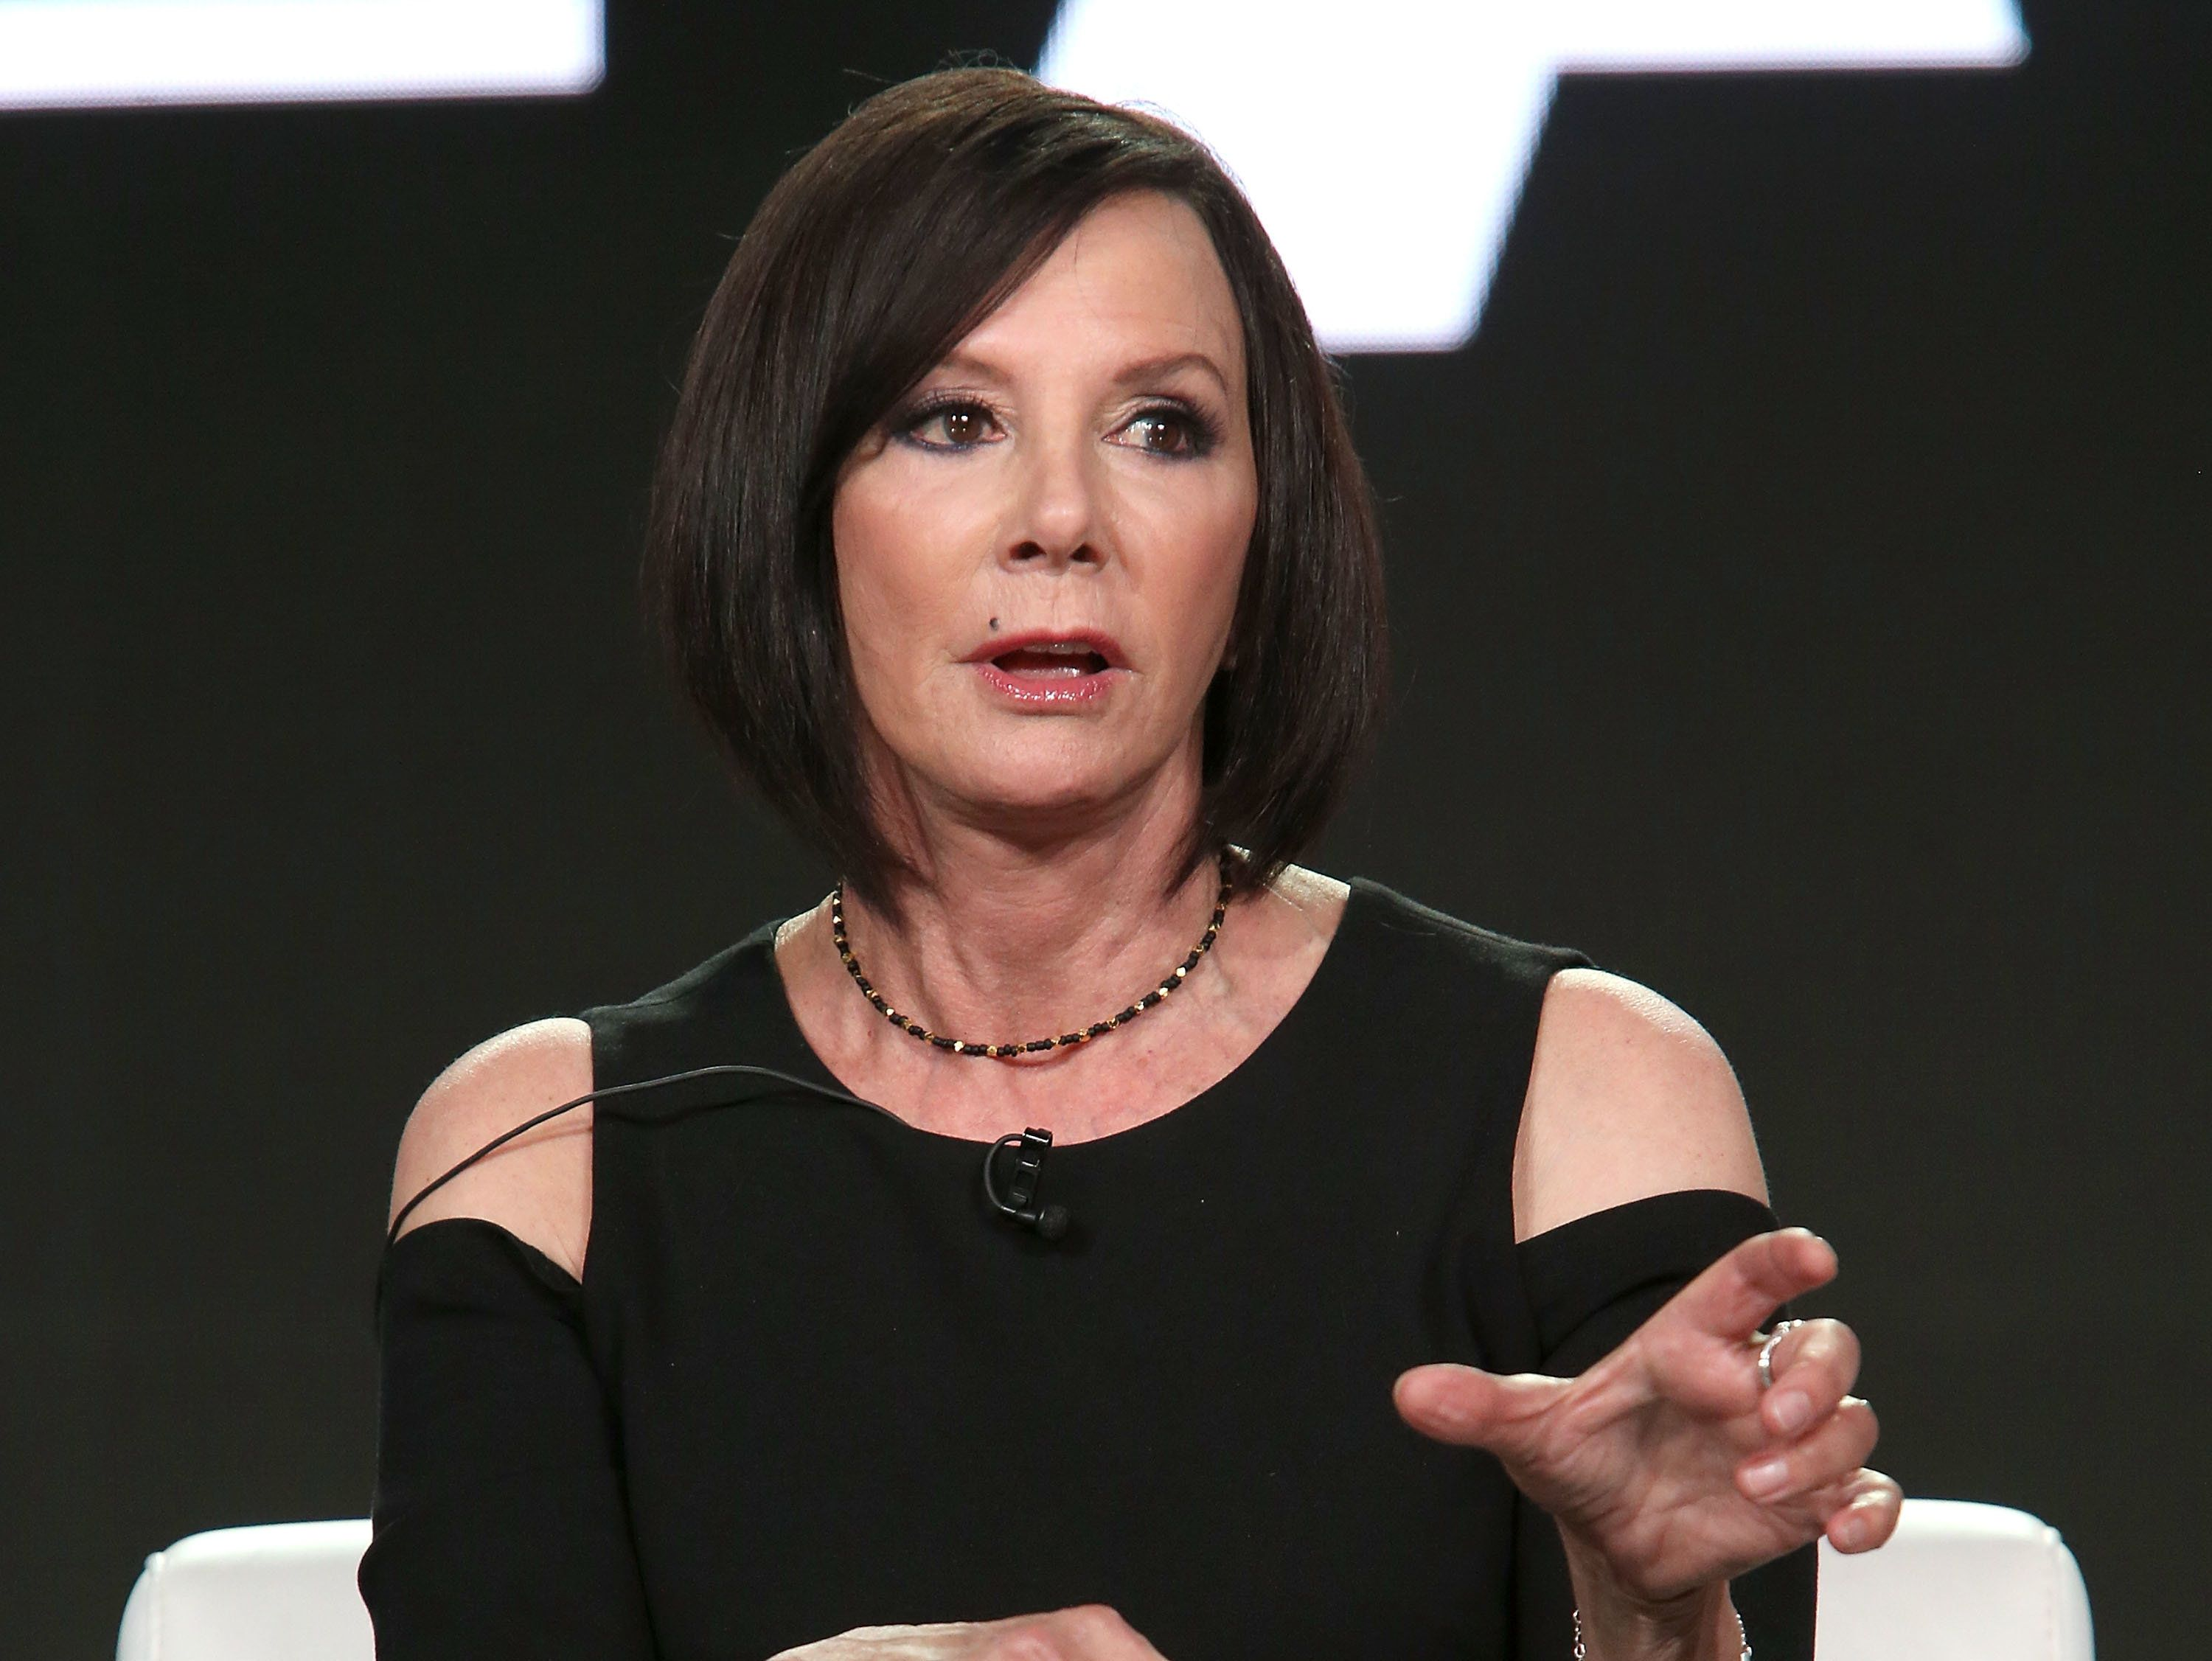 PASADENA, CA - JANUARY 14:  Executive producer Marcia Clark attends A+E Networks' 2018 Winter Television Critics Association Press Tour on January 14, 2018 in Pasadena, California.  (Photo by Jesse Grant/Getty Images for A+E Networks/Lifetime)